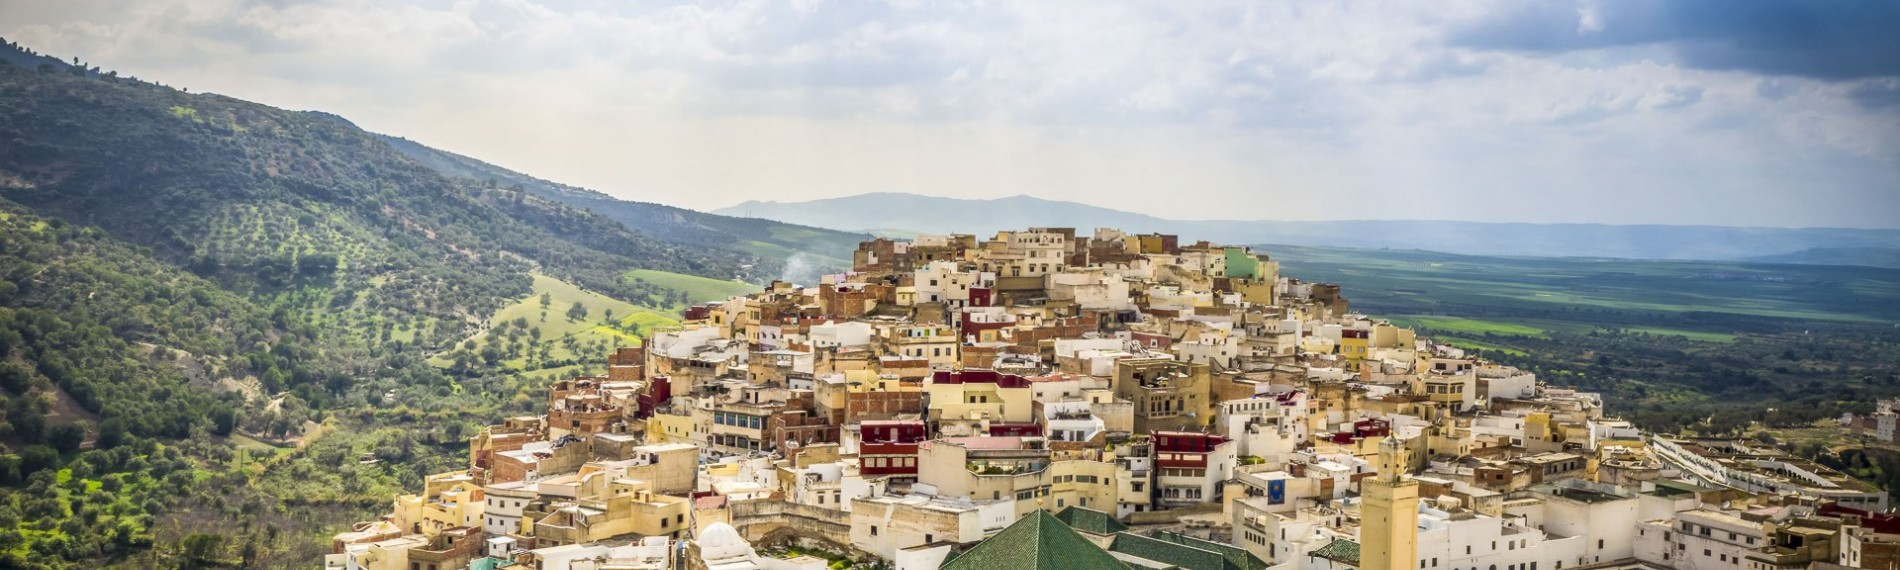 Full day trip to Meknes and Moulay Idriss